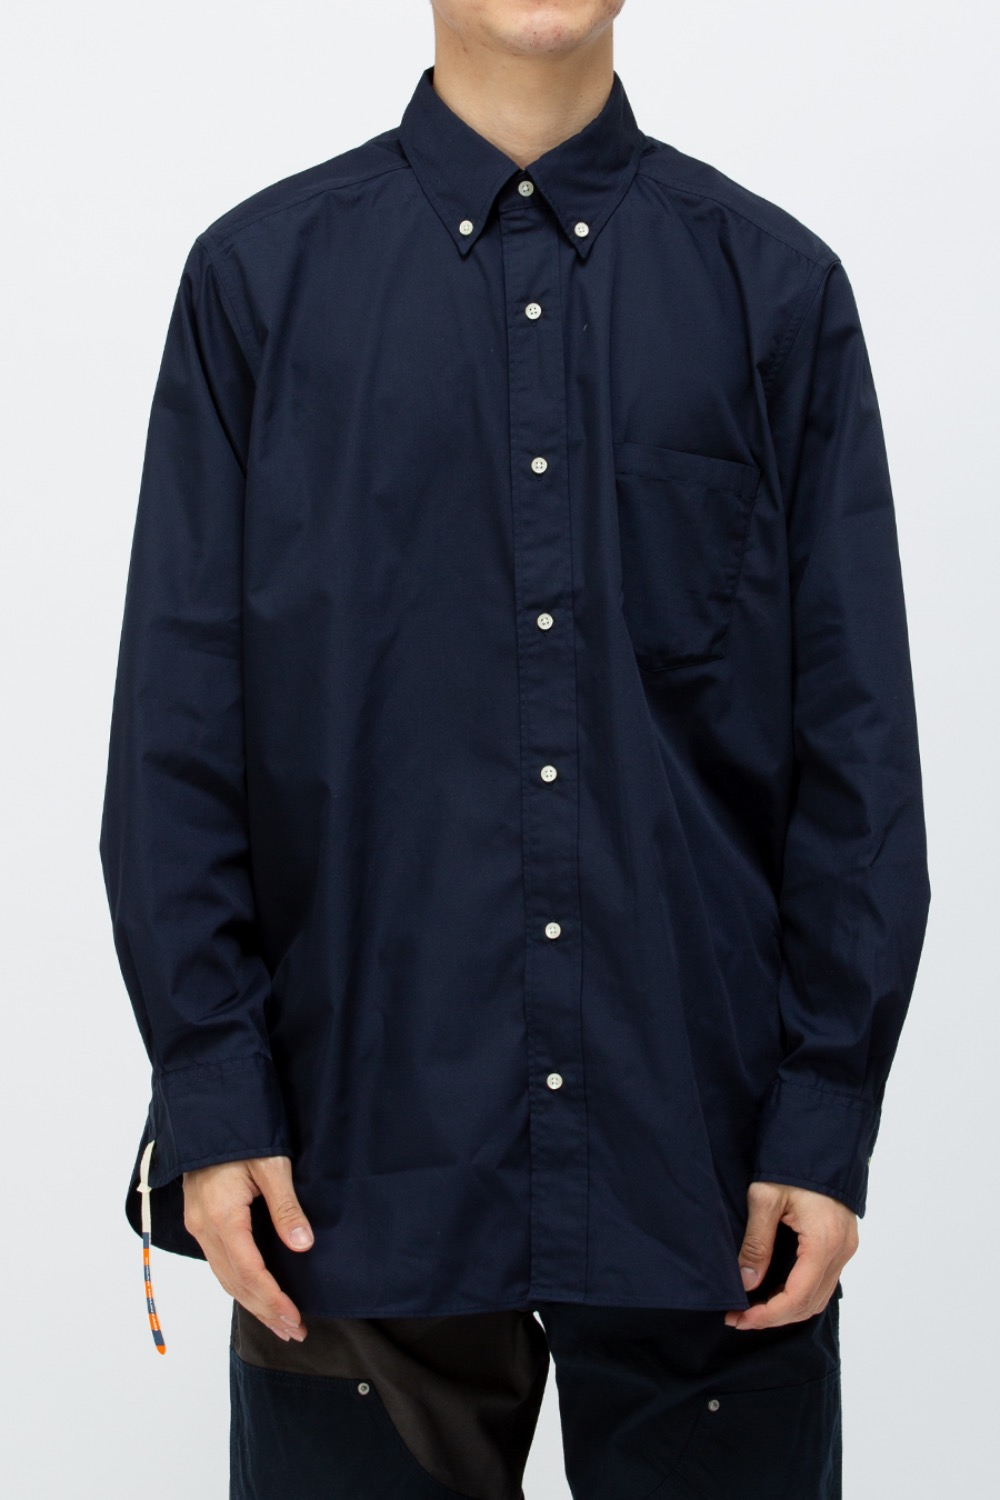 BACK CROSS SHIRT NAVY